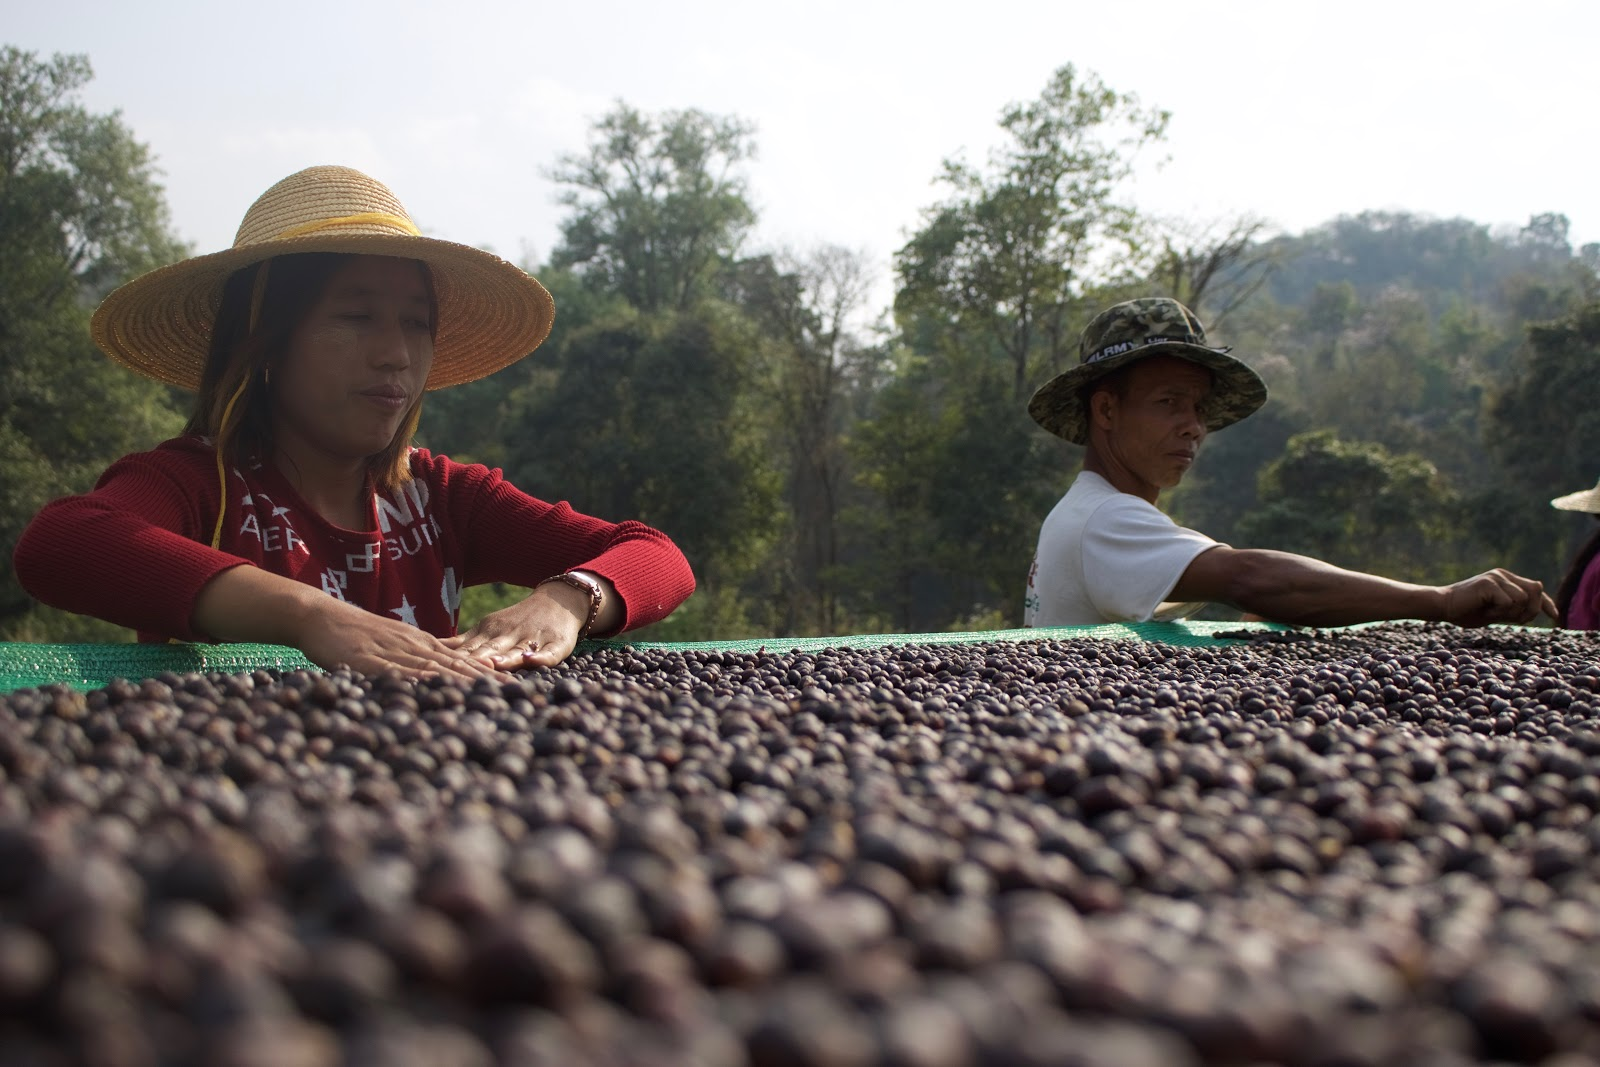 two coffee farmers spreading coffee beans to dry them under the sun